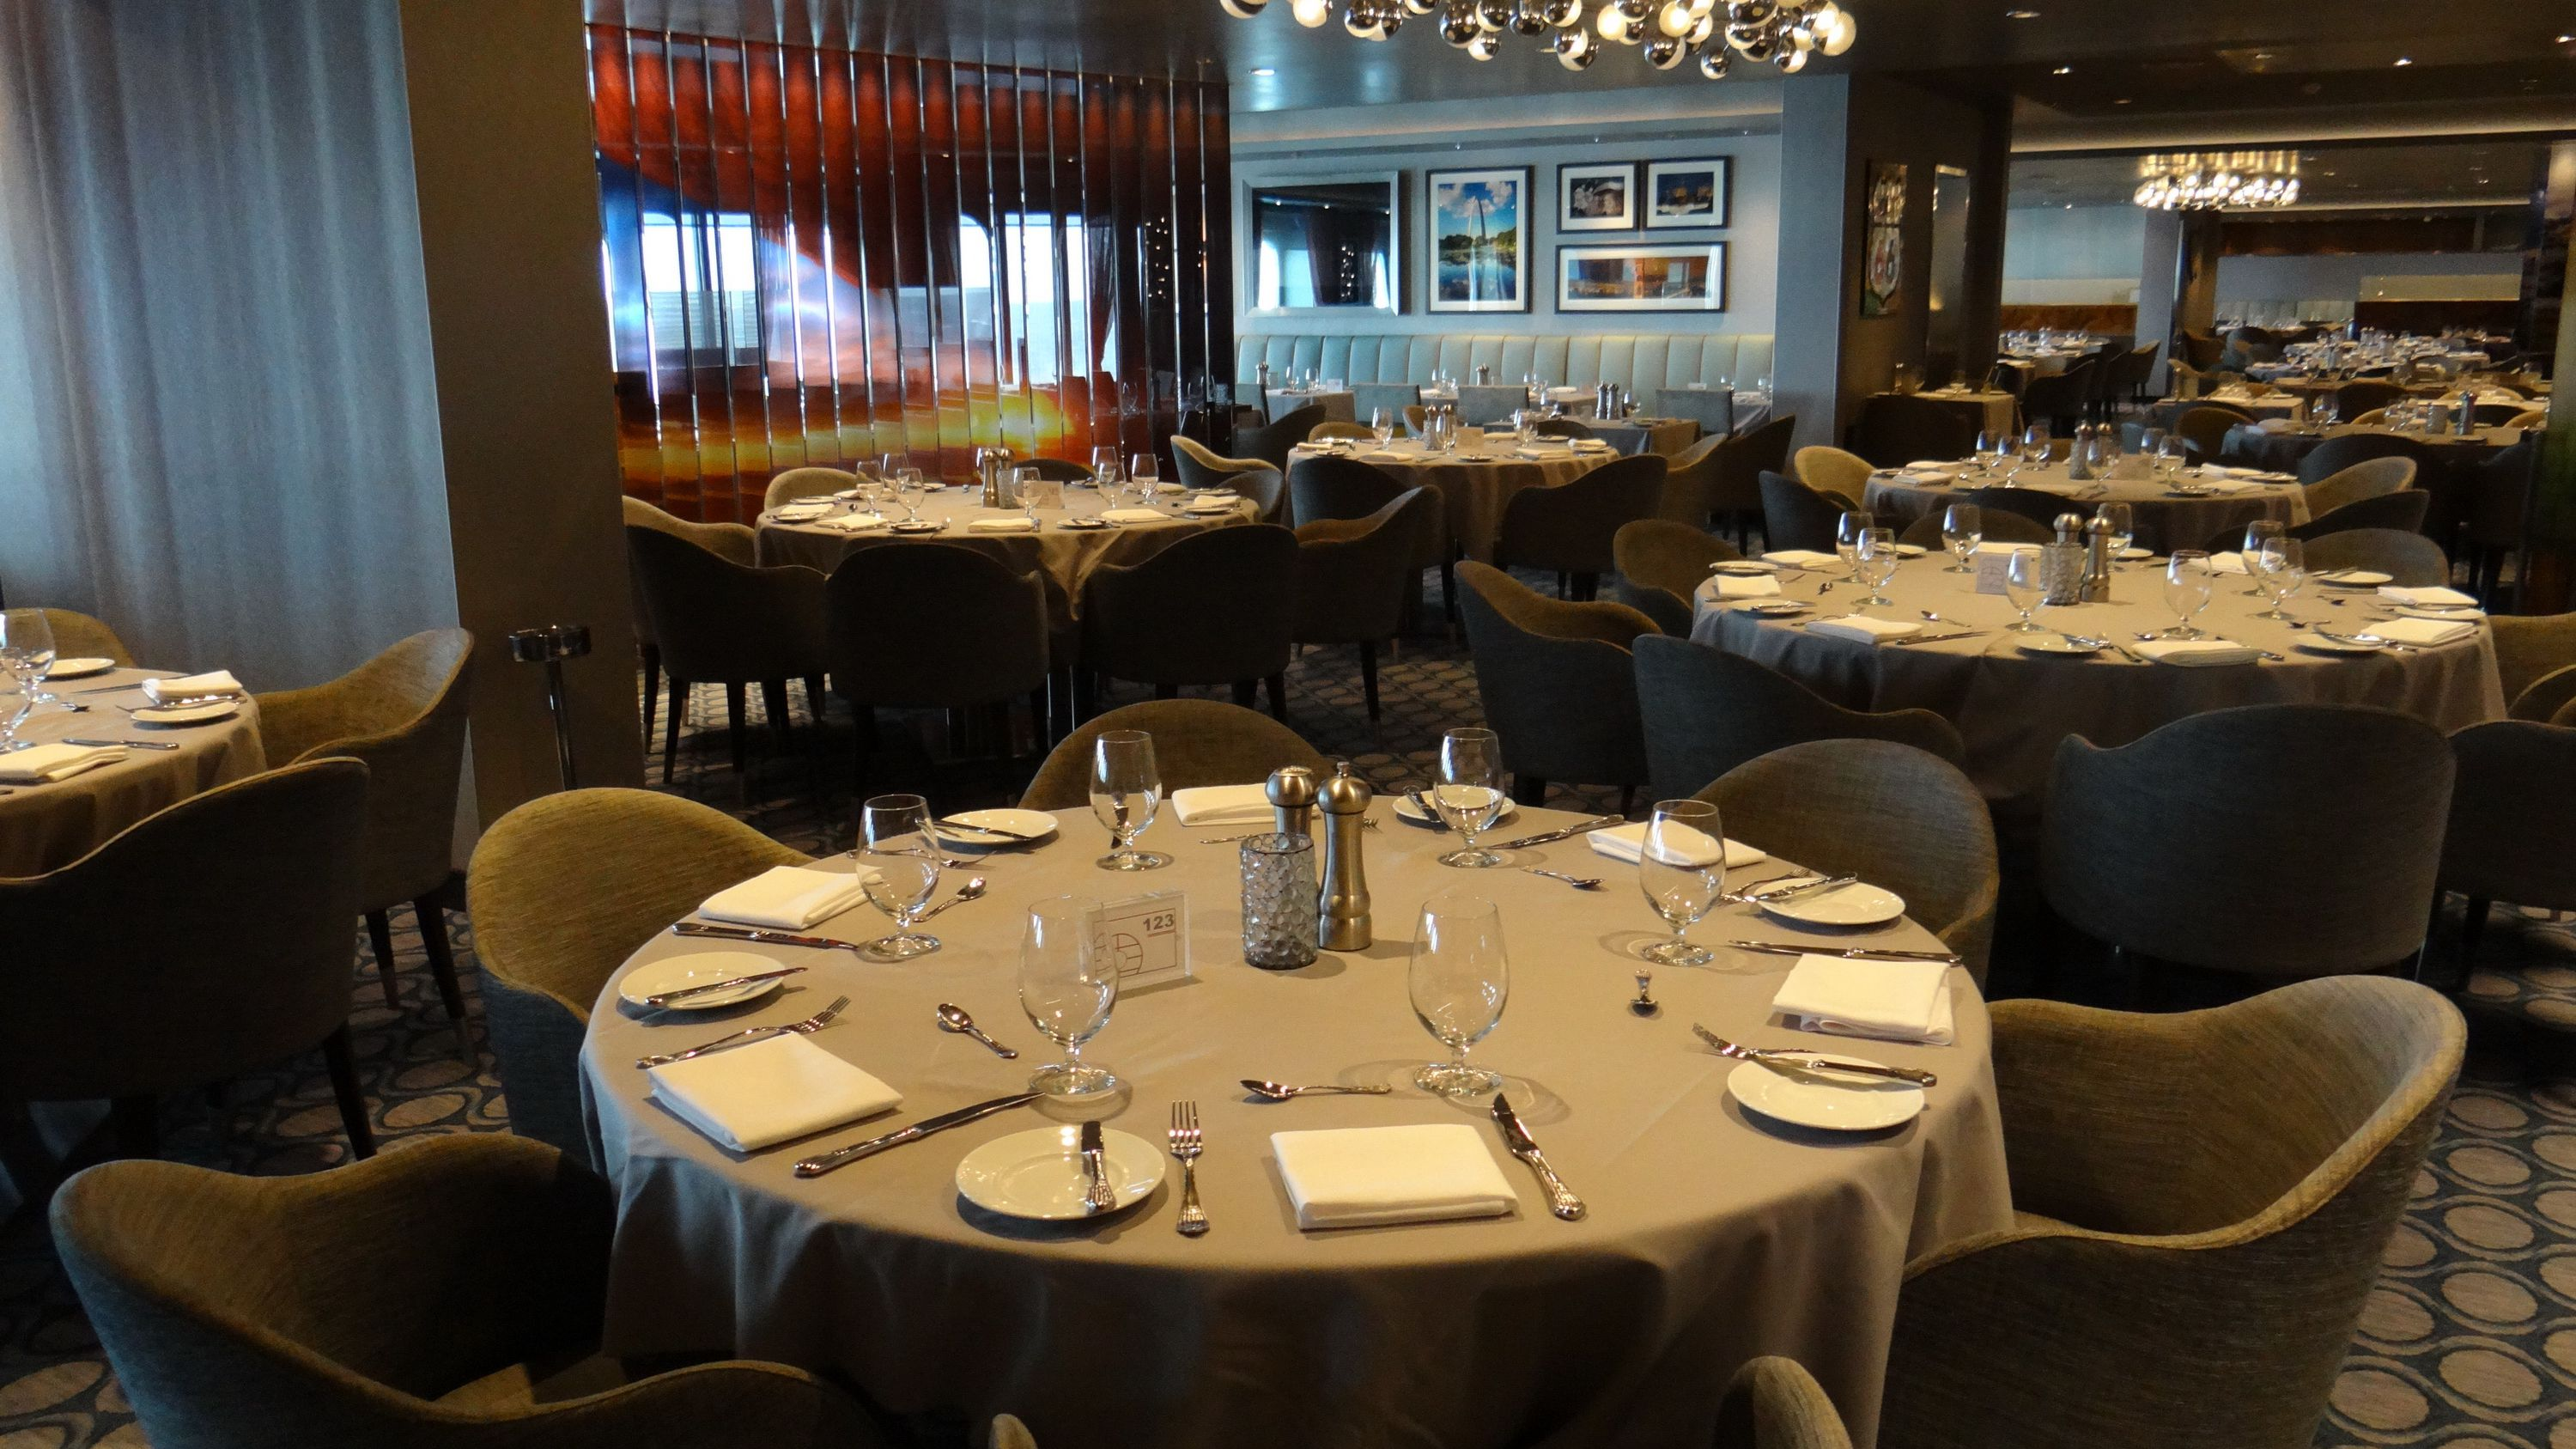 Dining Options On The Quantum Of The Seas